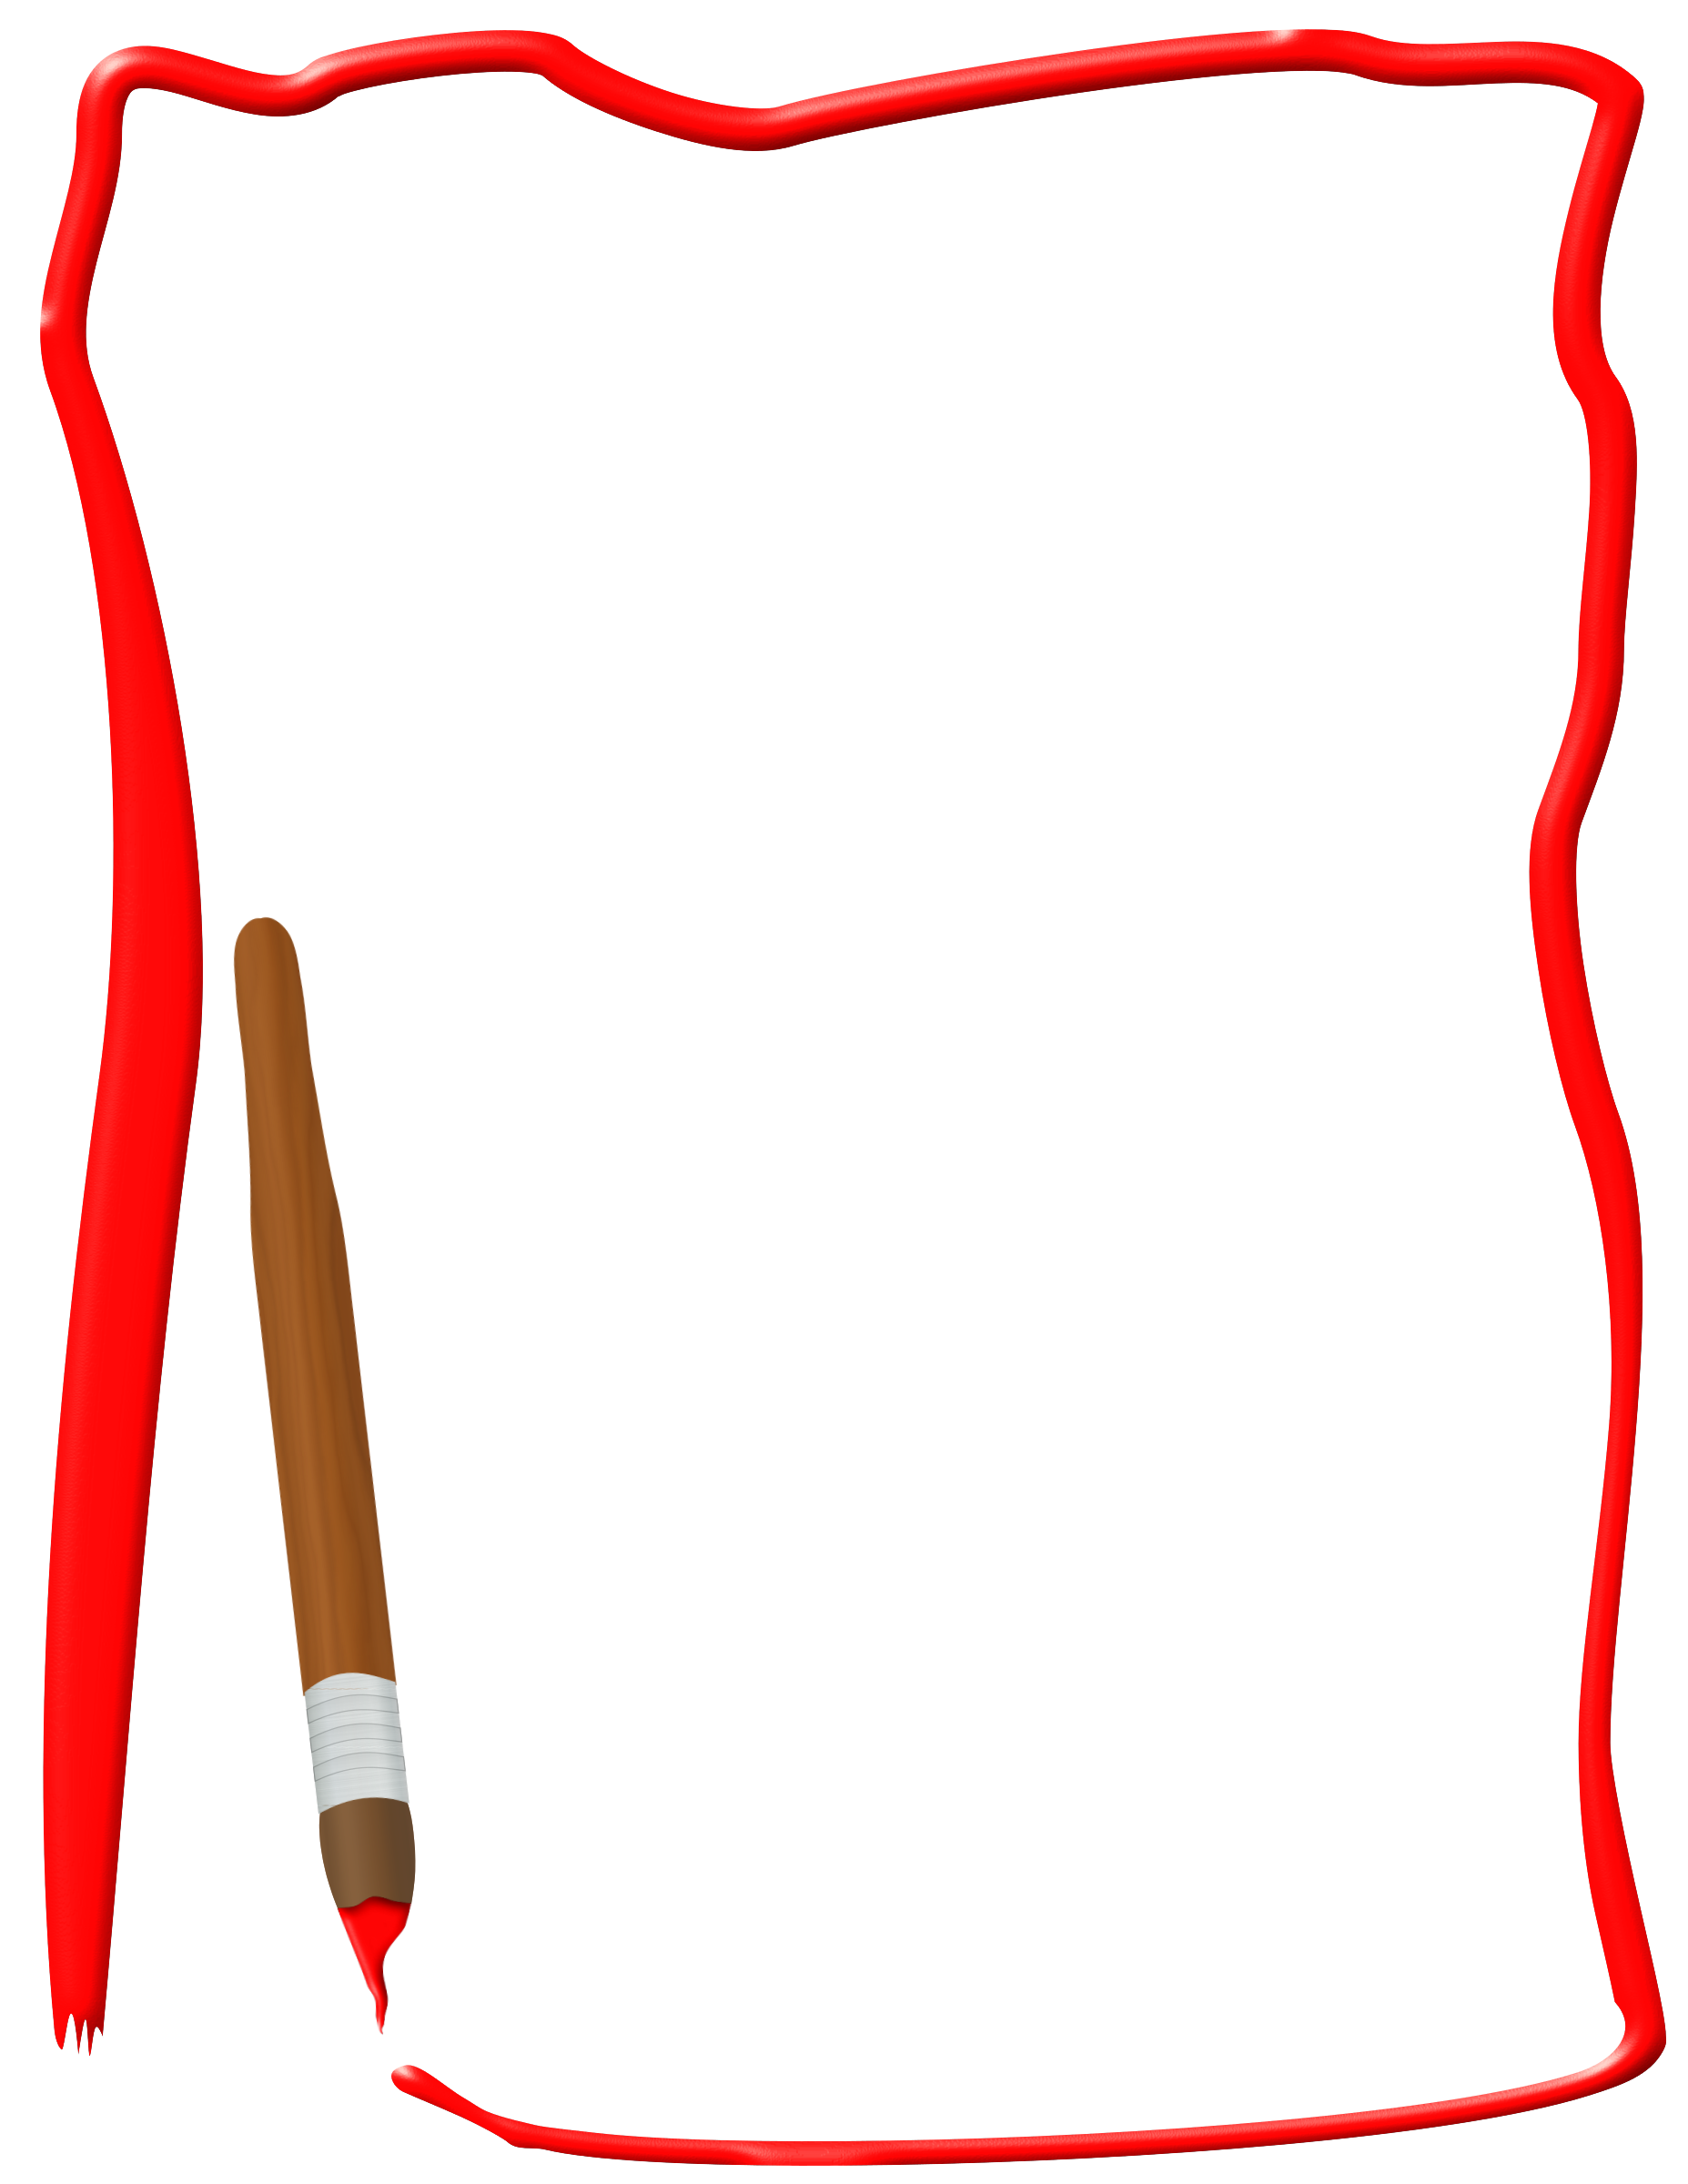 Paint brush big image. Border clipart png image library stock